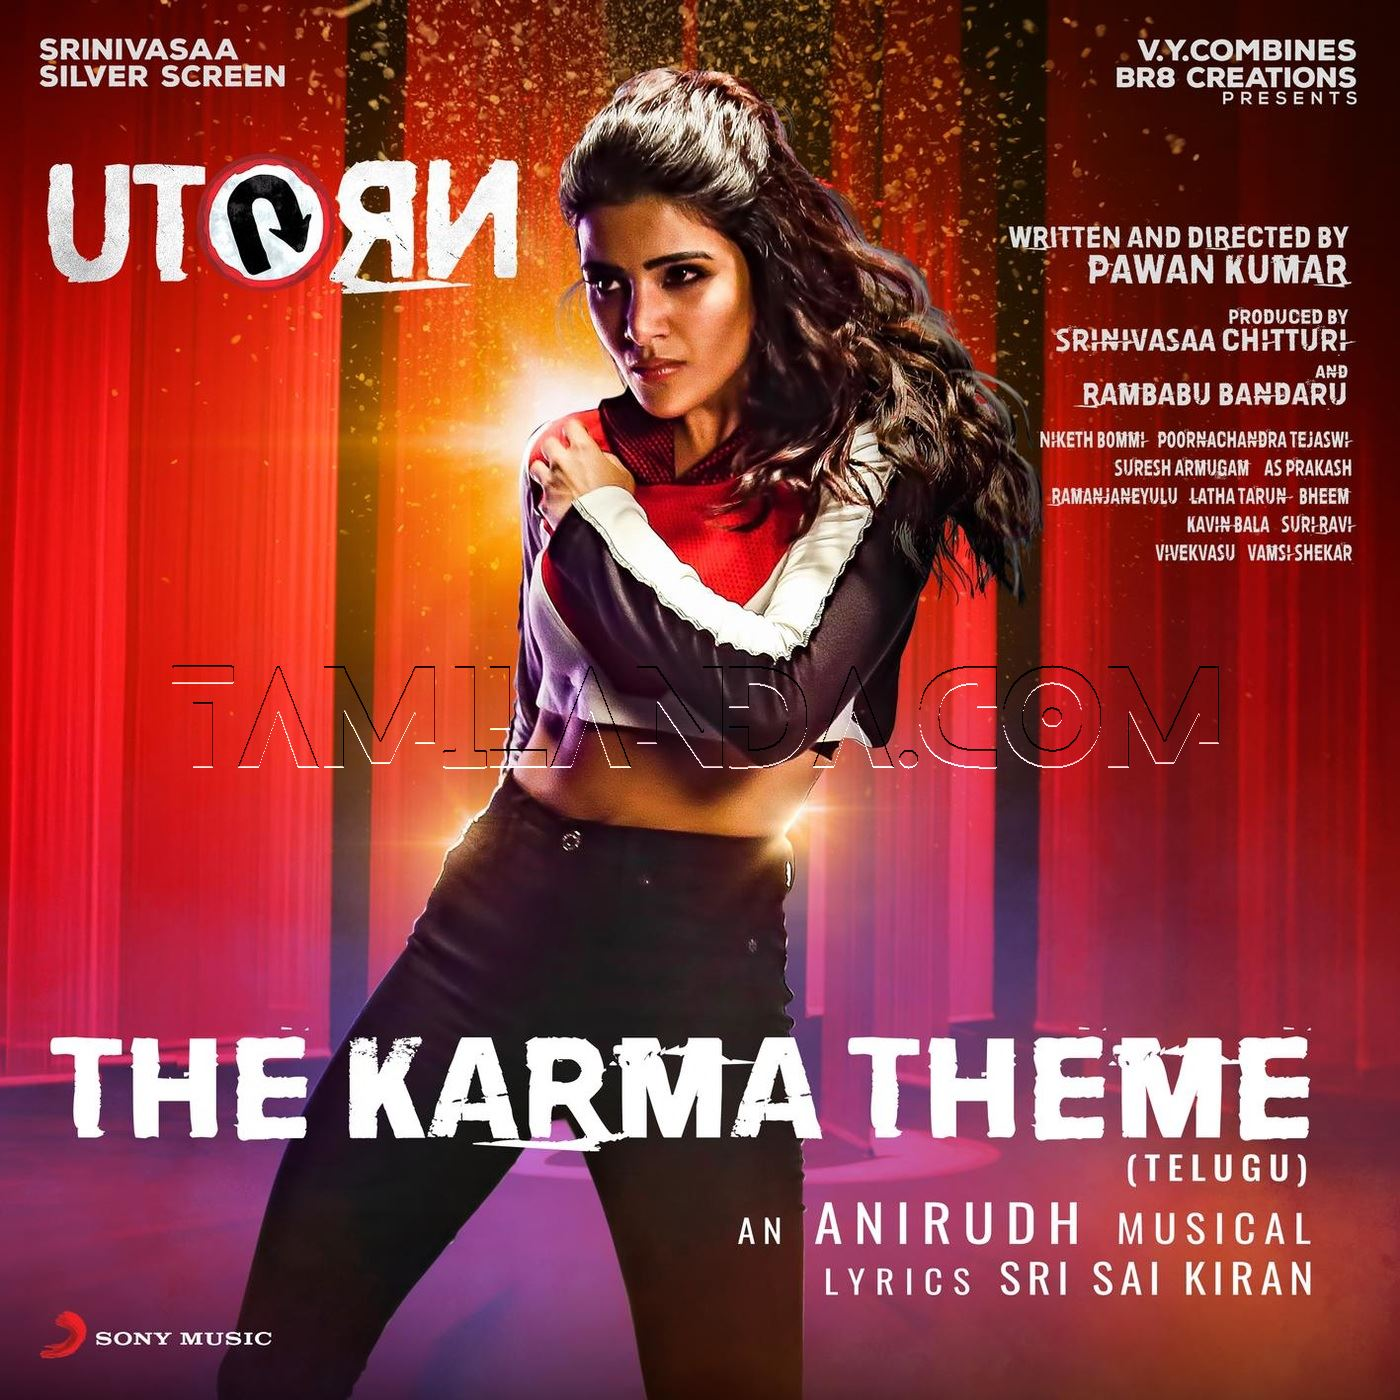 The Karma Theme (Telugu) (From U Turn) – Single FLAC Song